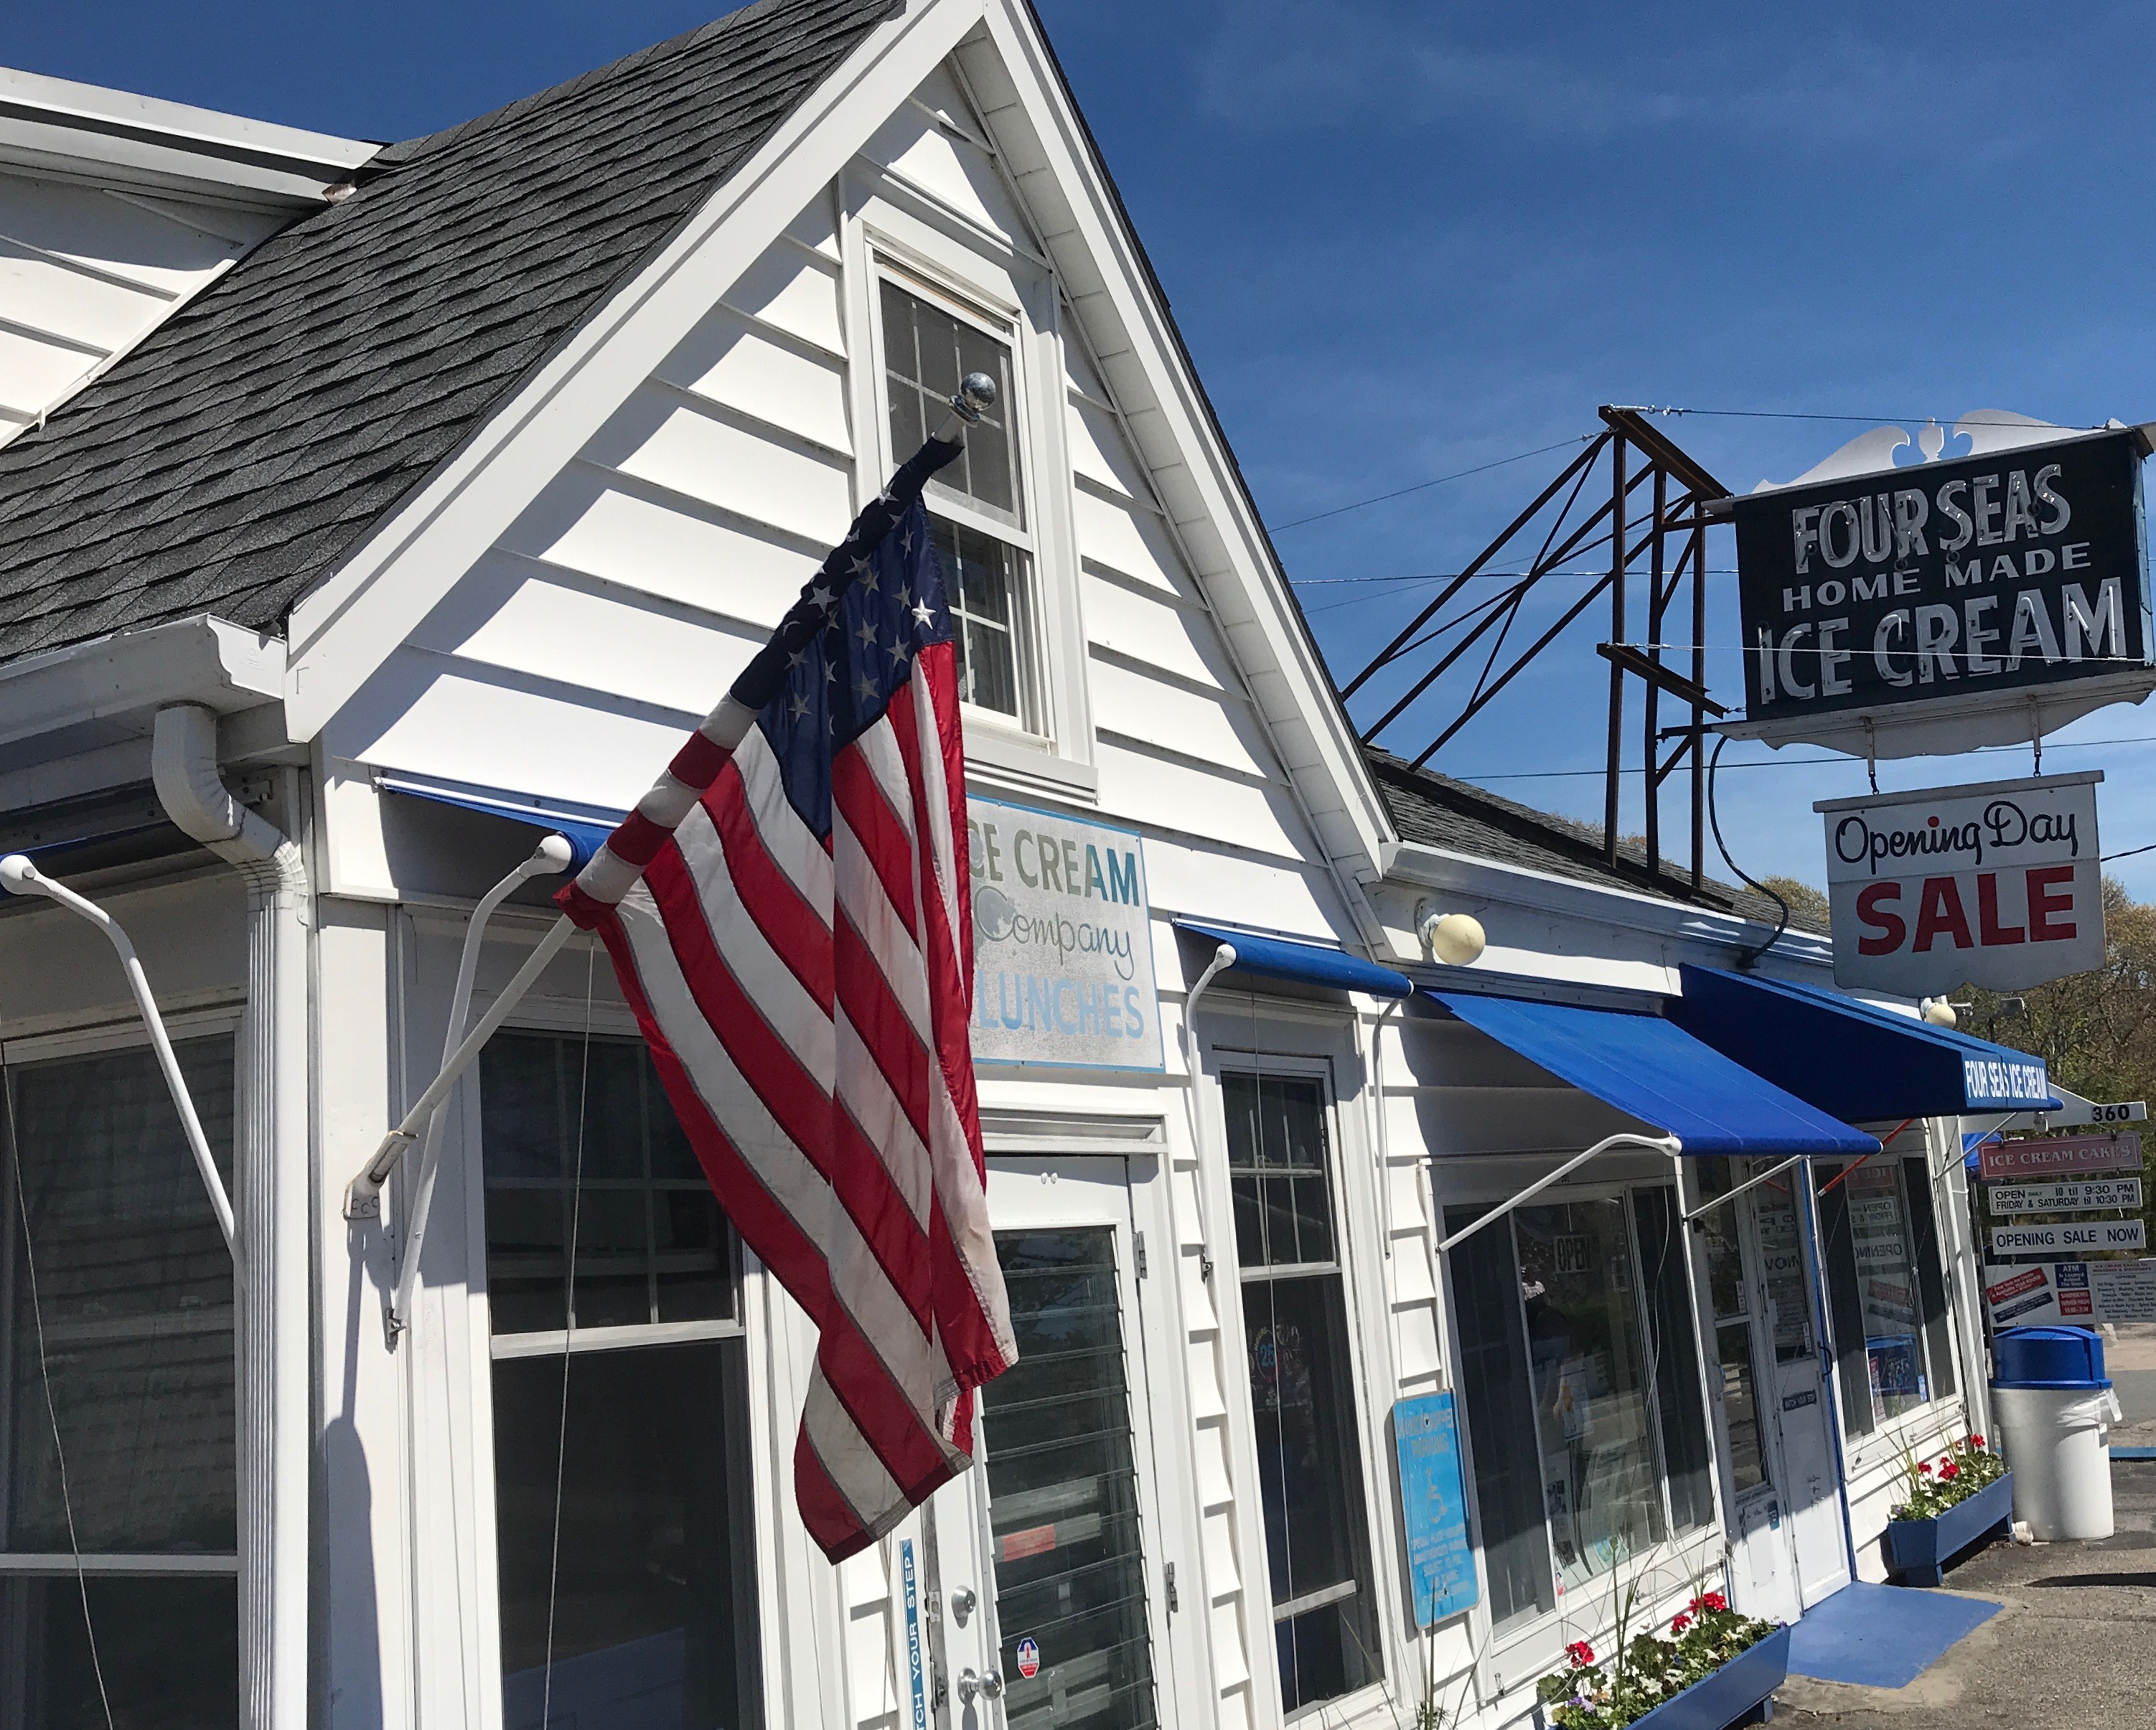 creamery - Four Seas - Cape Cod